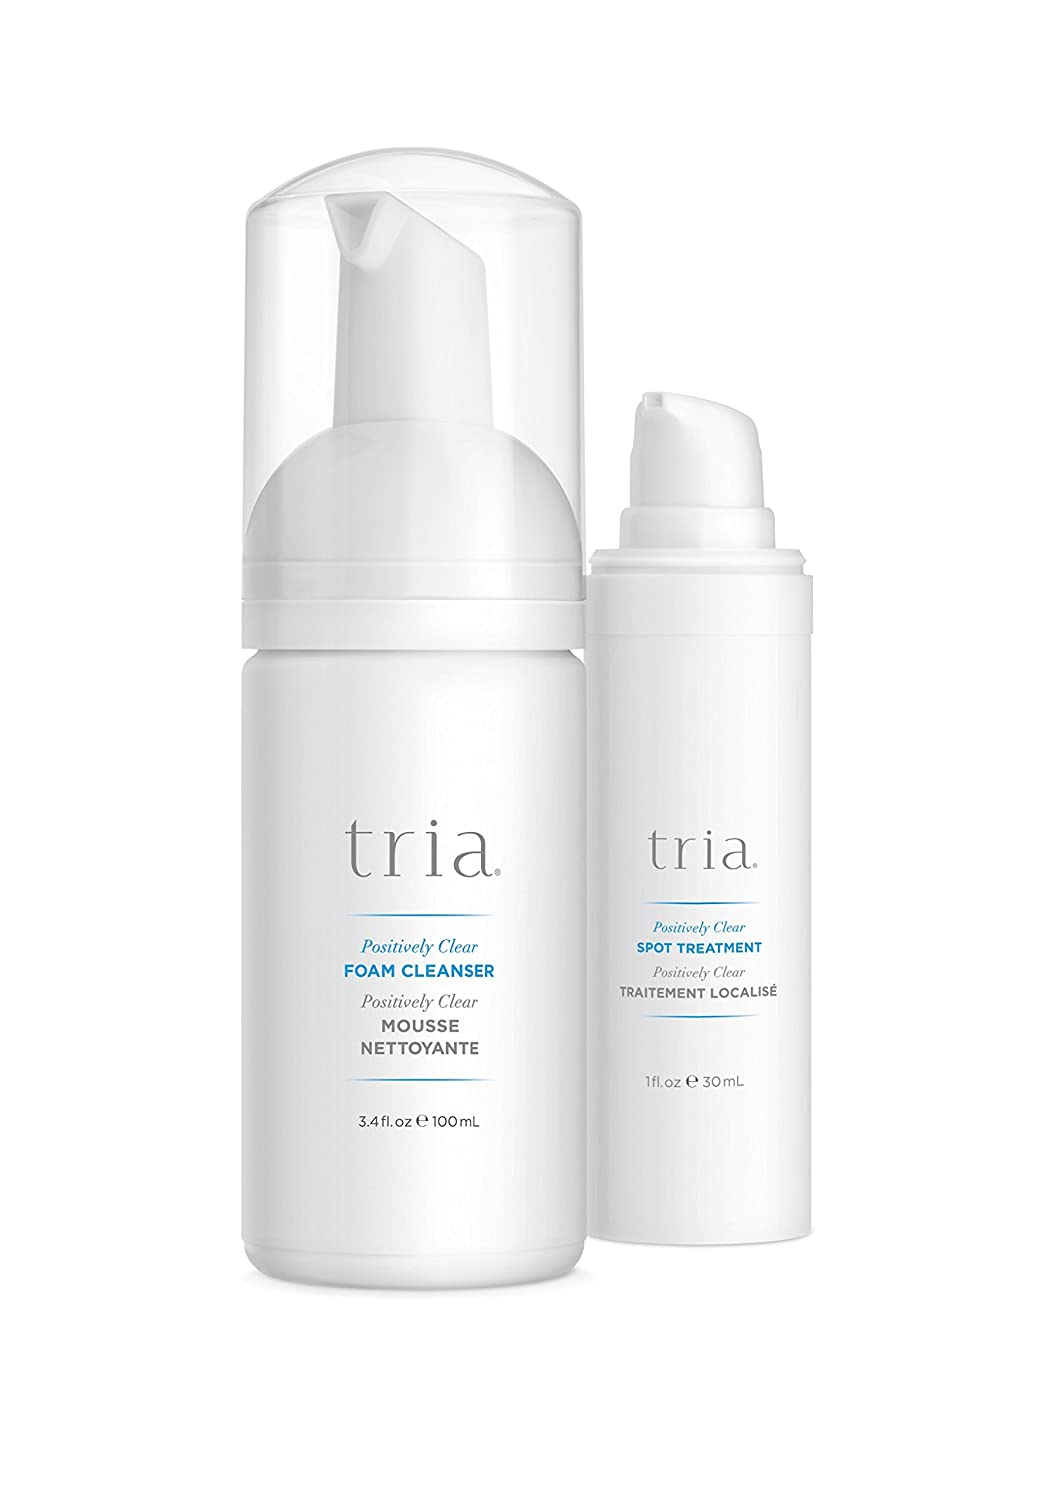 Tria Beauty Positively Clear Skin Duo Set